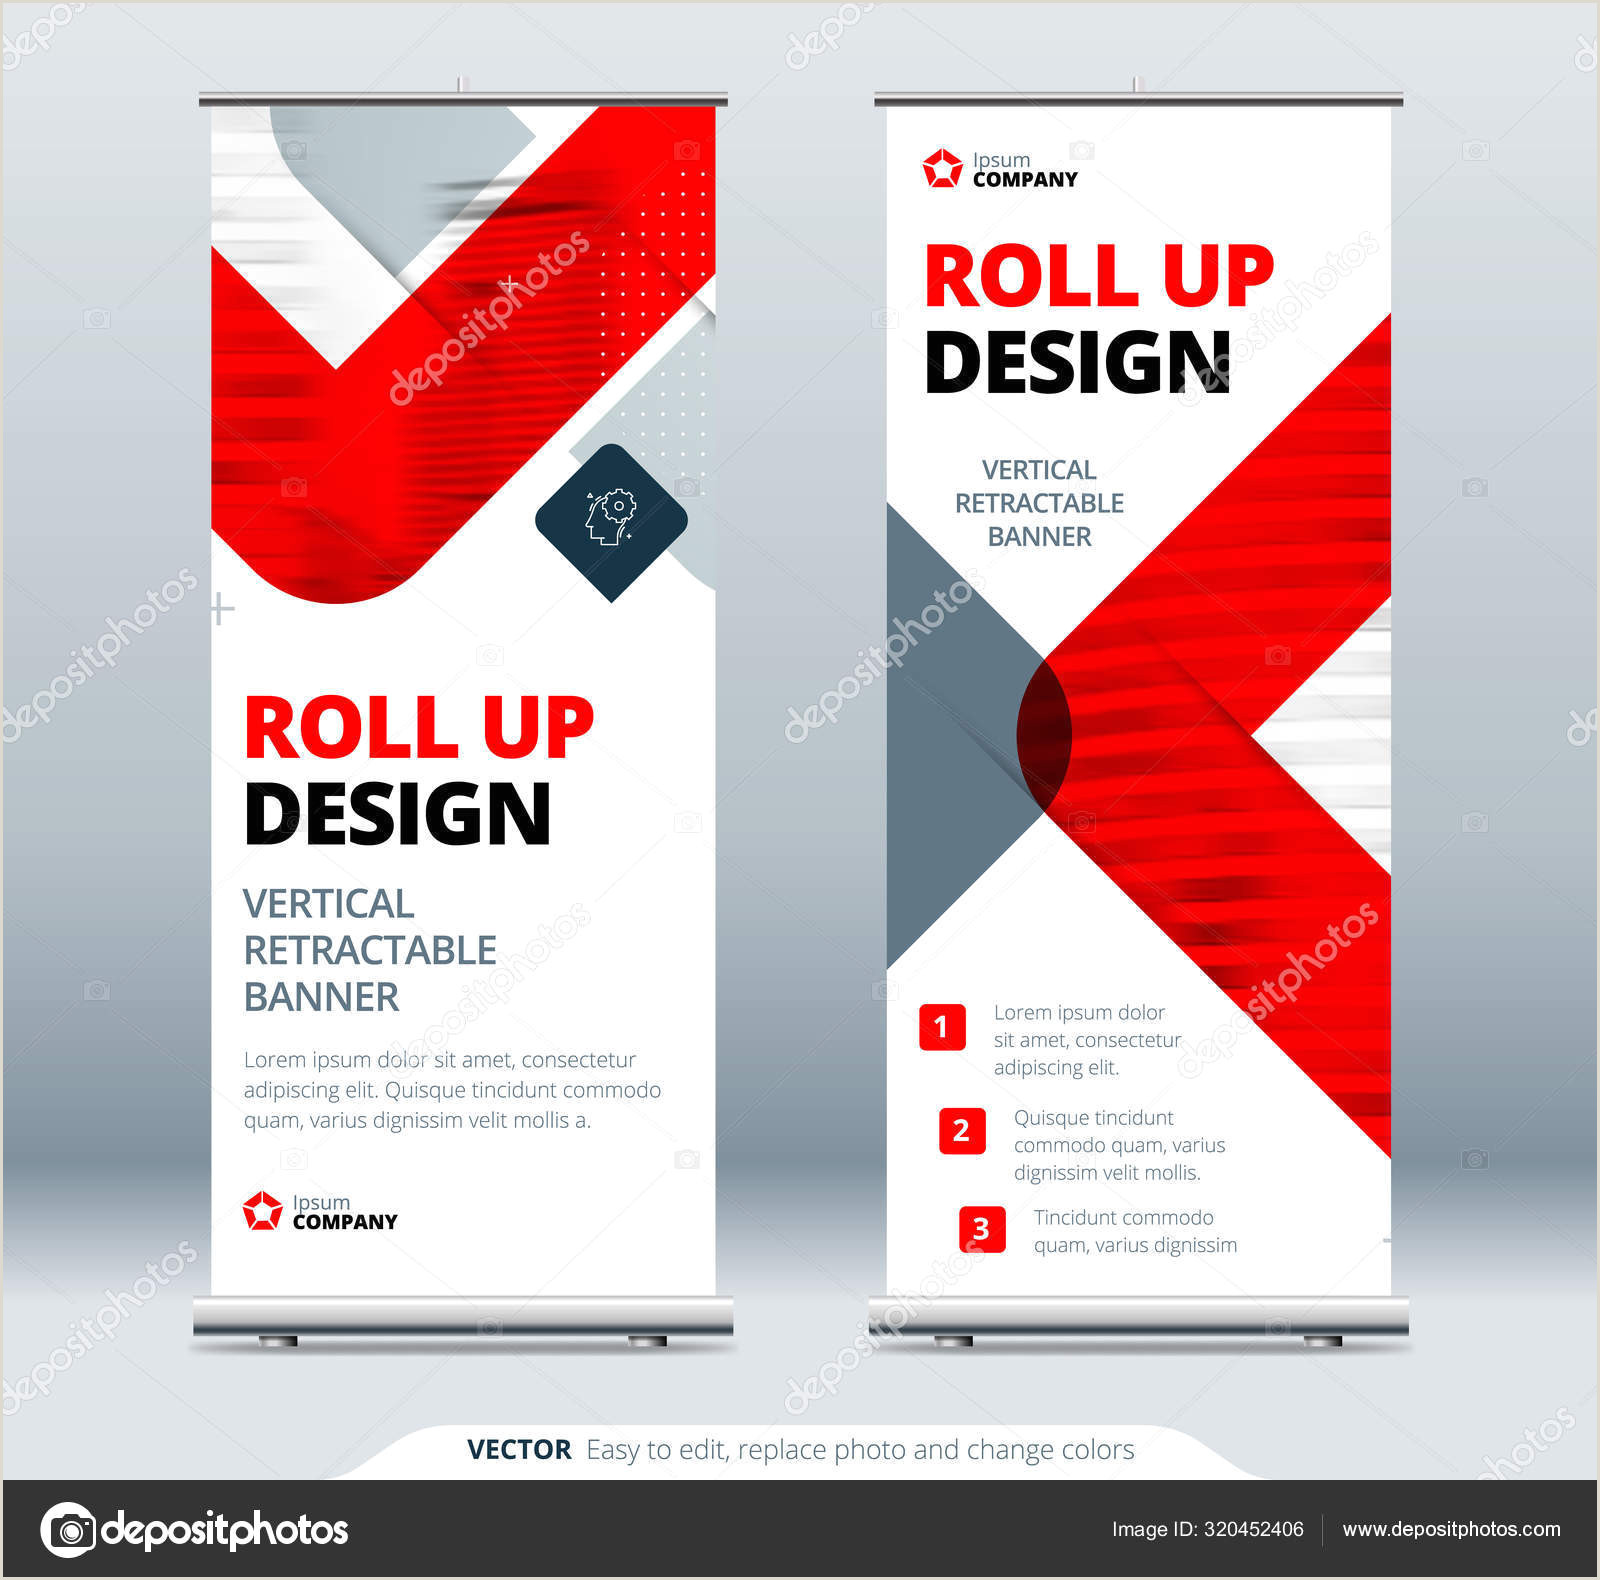 Vinyl Banner With Stand Business Roll Up Banner Stand Abstract Roll Up Background For Presentation Vertical Roll Up X Stand X Banner Exhibition Retractable Banner Stand